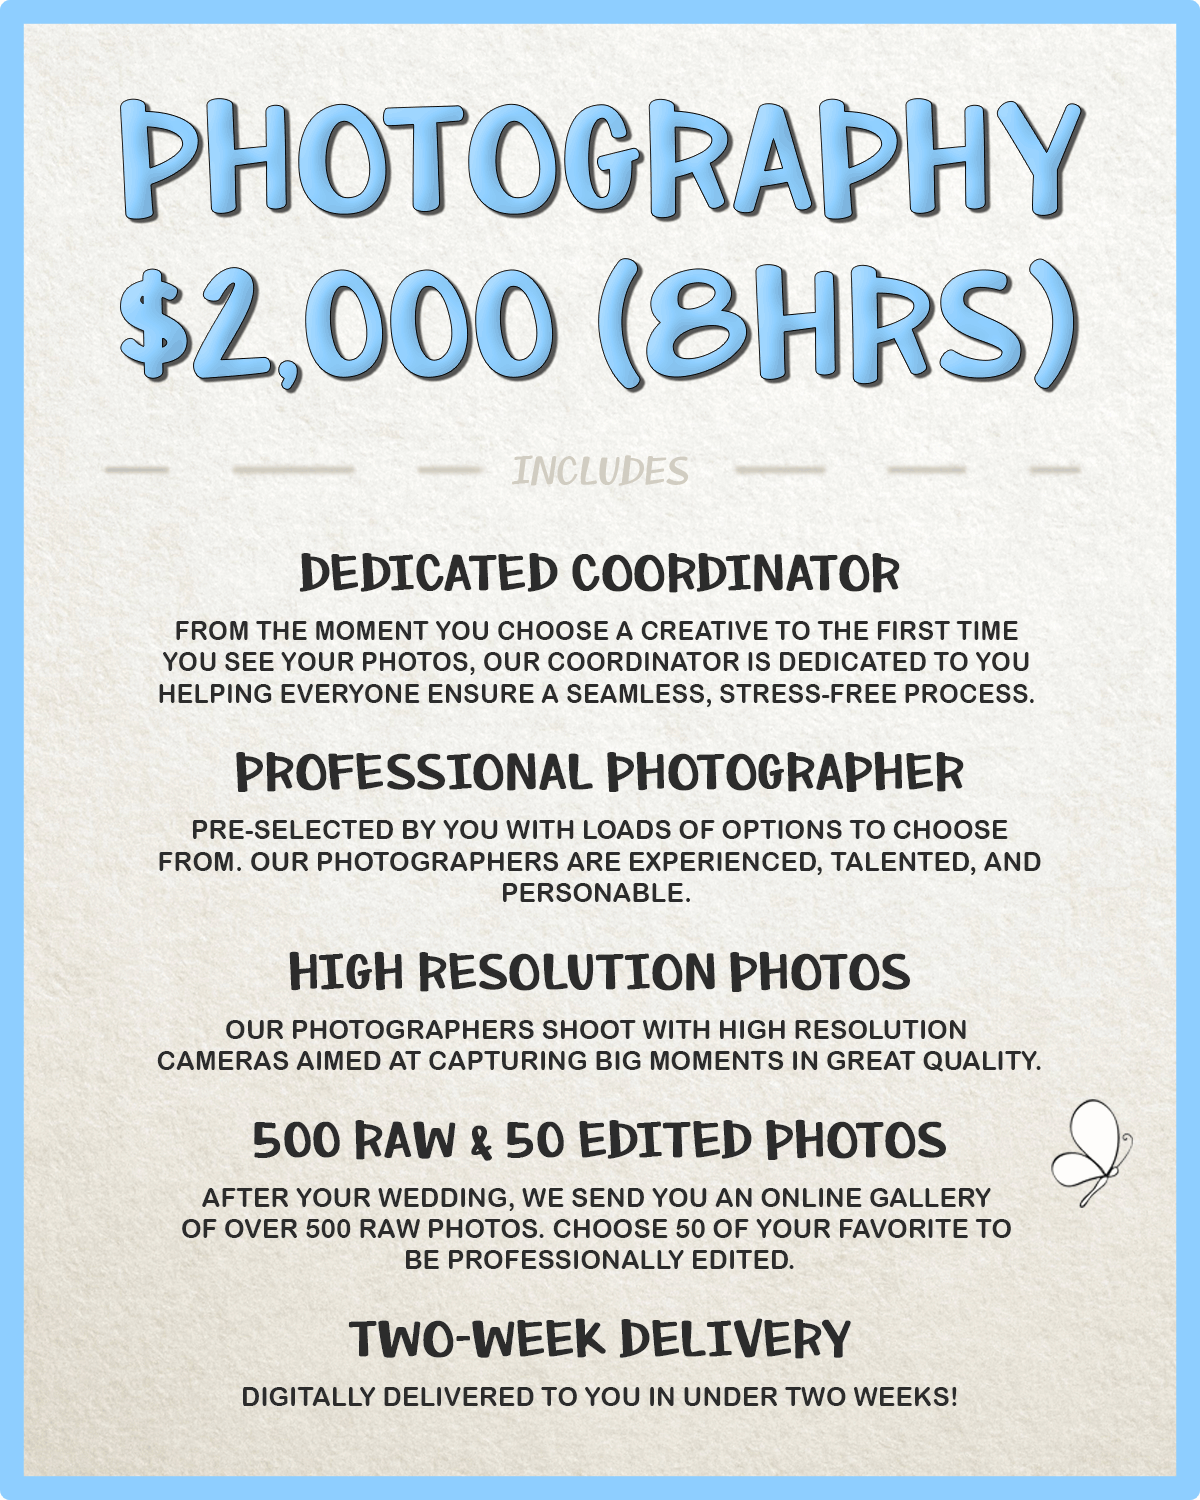 Weddings Recorded Photography Prices